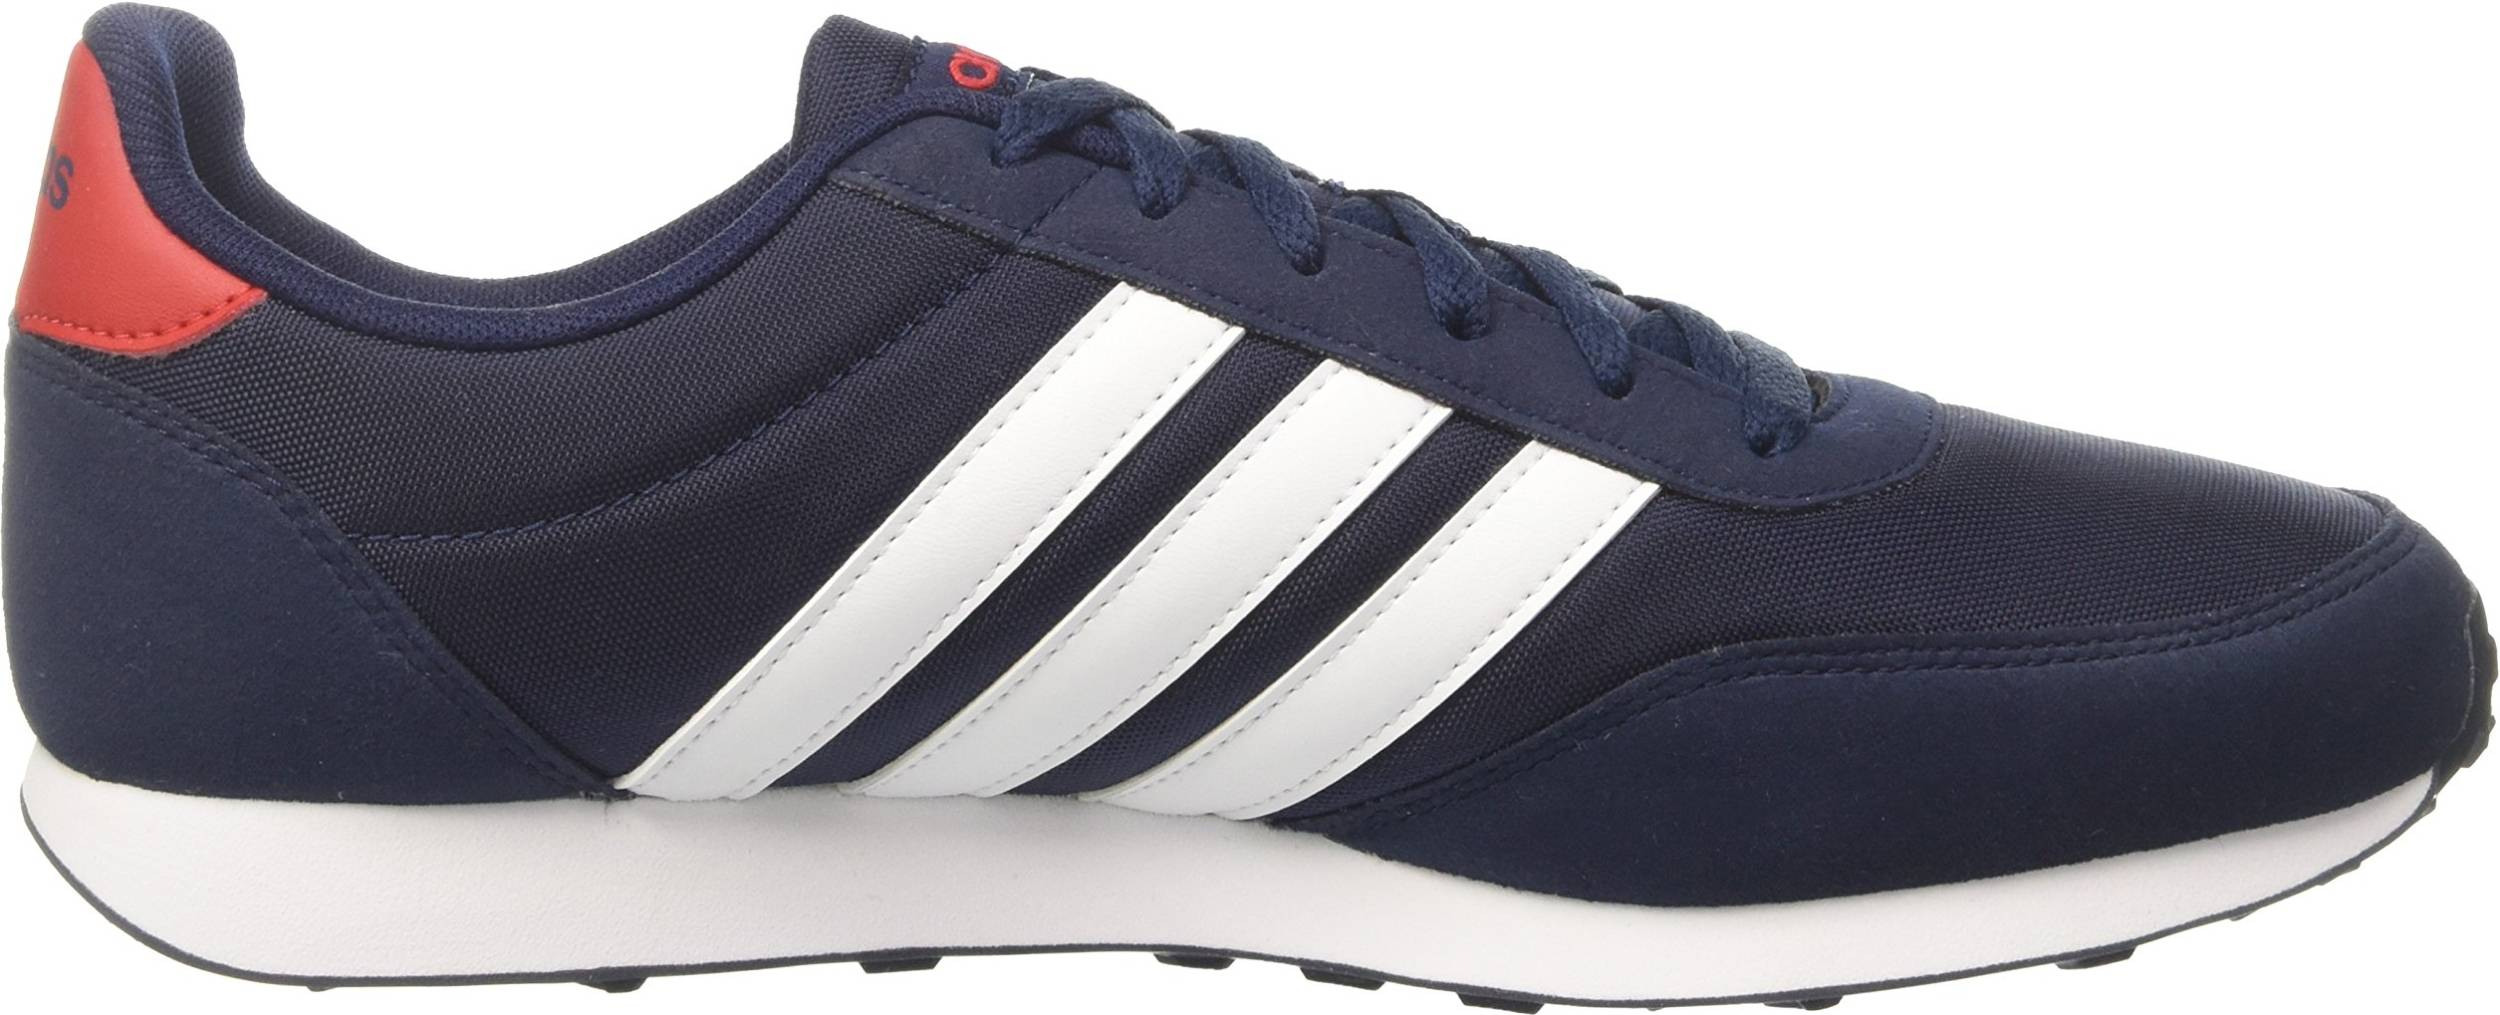 llorar paralelo Eclipse solar  Adidas V Racer 2.0 sneakers in blue (only $40) | RunRepeat